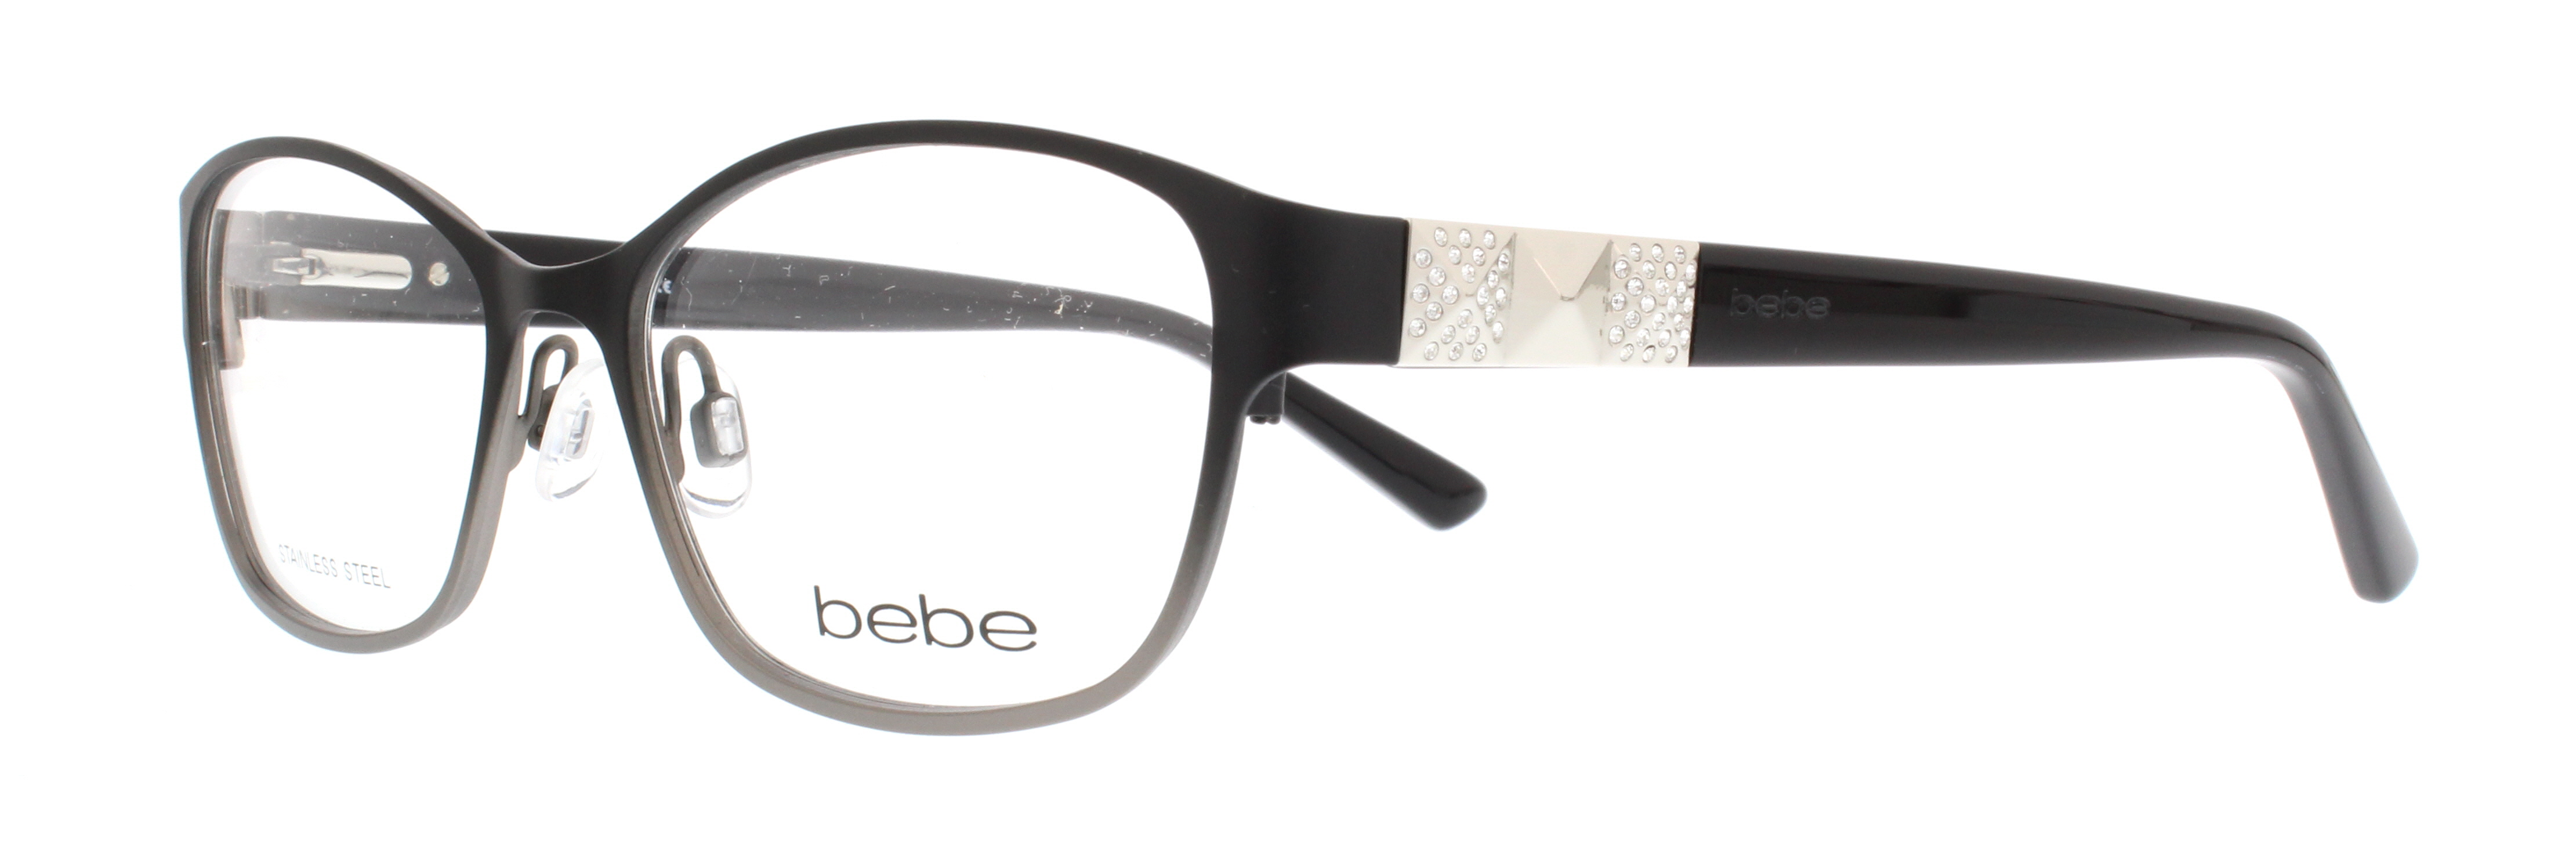 Designer Frames Outlet Bebe BB Love On The Rocks - What is invoice processing online glasses store